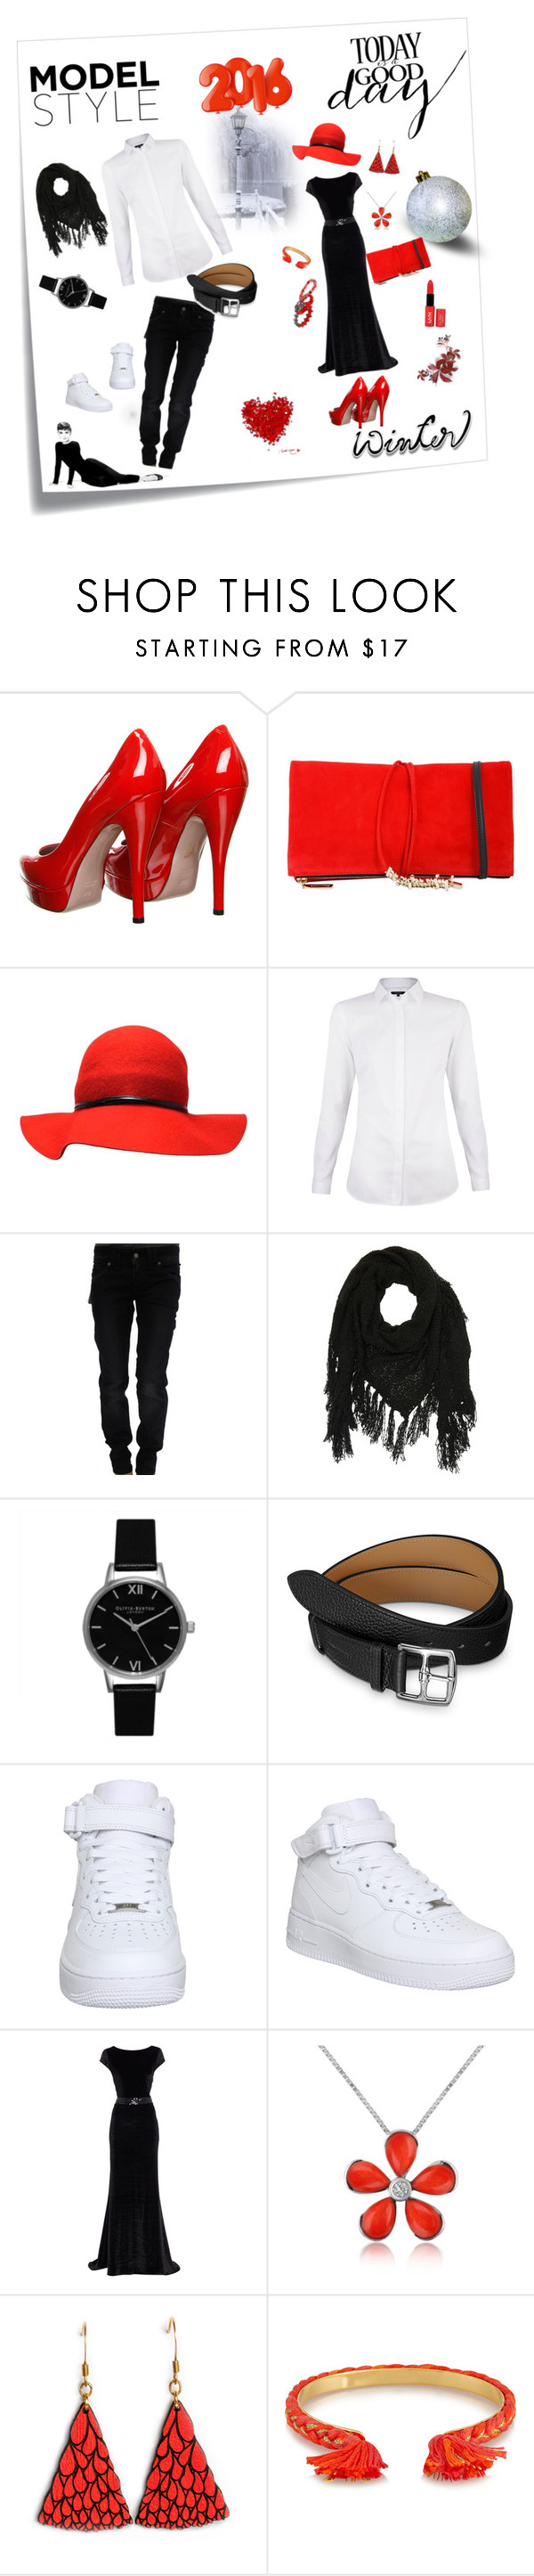 """Bez naslova #3"" by munja92 ❤ liked on Polyvore featuring Post-It, Gucci, Dsquared2, NYX, Galliano, Charlotte Russe, Olivia Burton, NIKE, Del Gatto and Aurélie Bidermann"